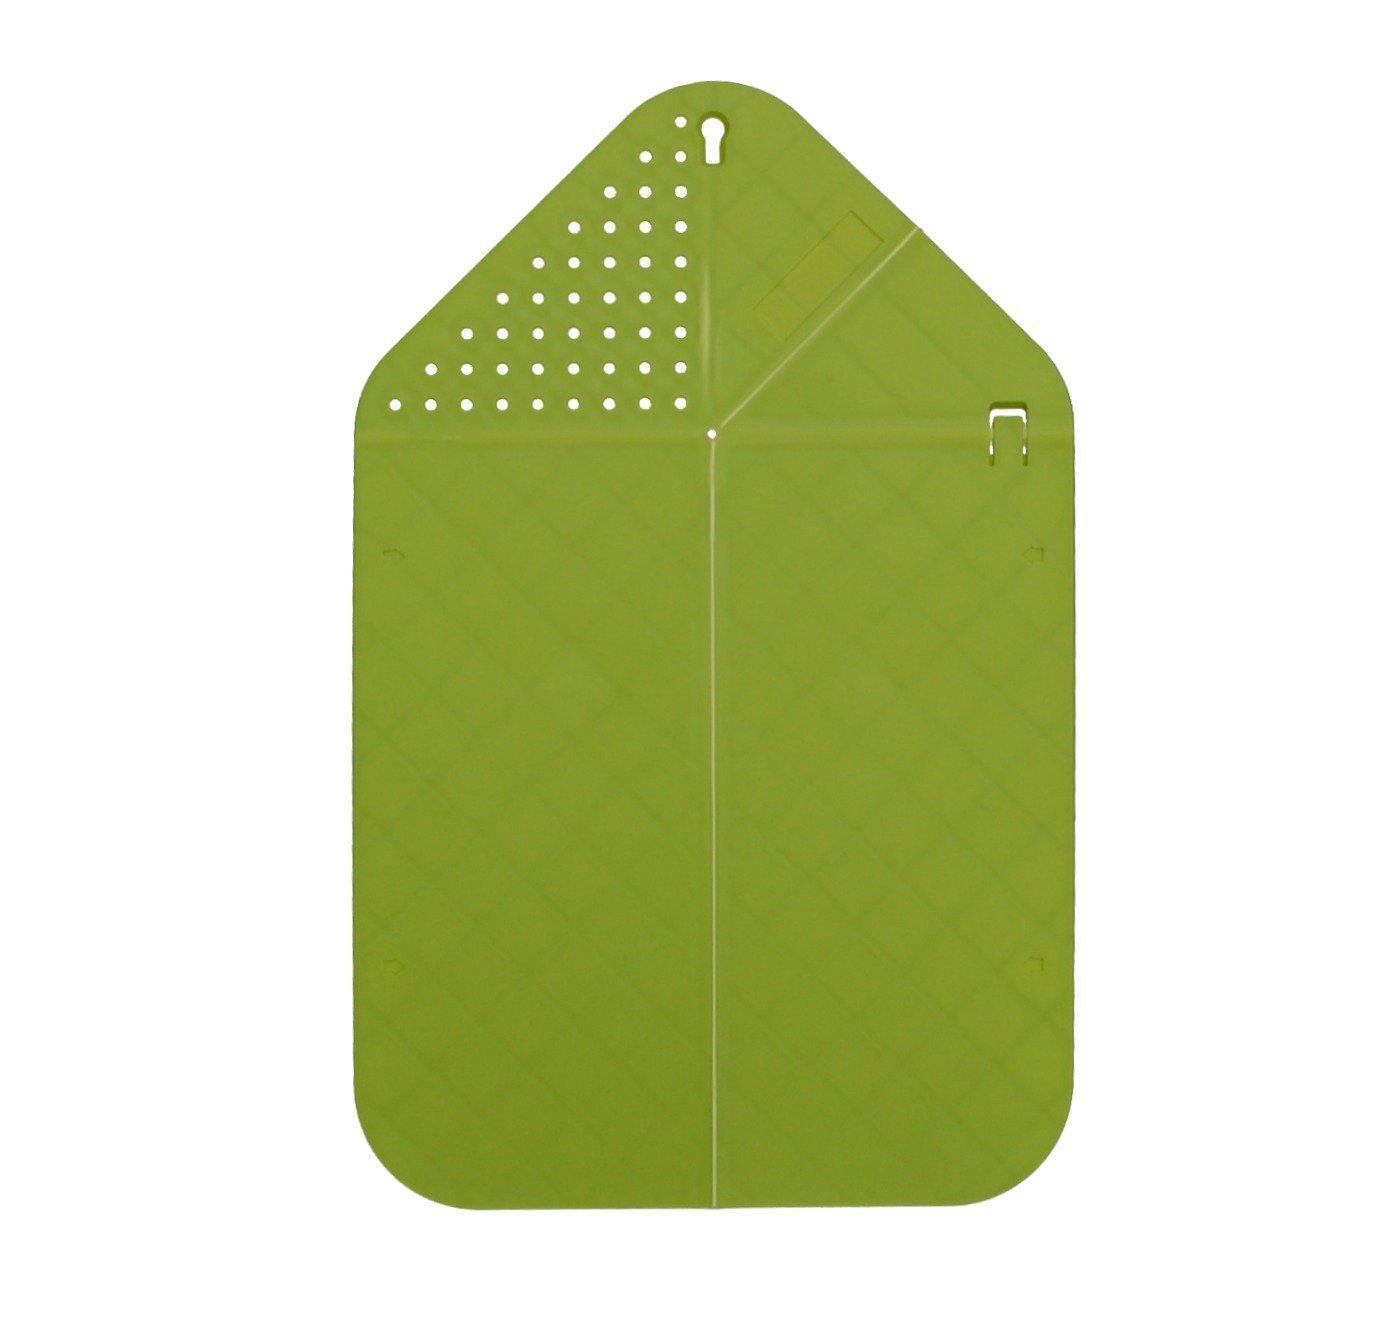 Cutting Board Plus Colander Colander Colander 2 in 1 Chopping Board with Integrated Strainer (Grün) Christmas Gifts for Her by Folding chopping board B00QG24QQU Seiher c9ba95